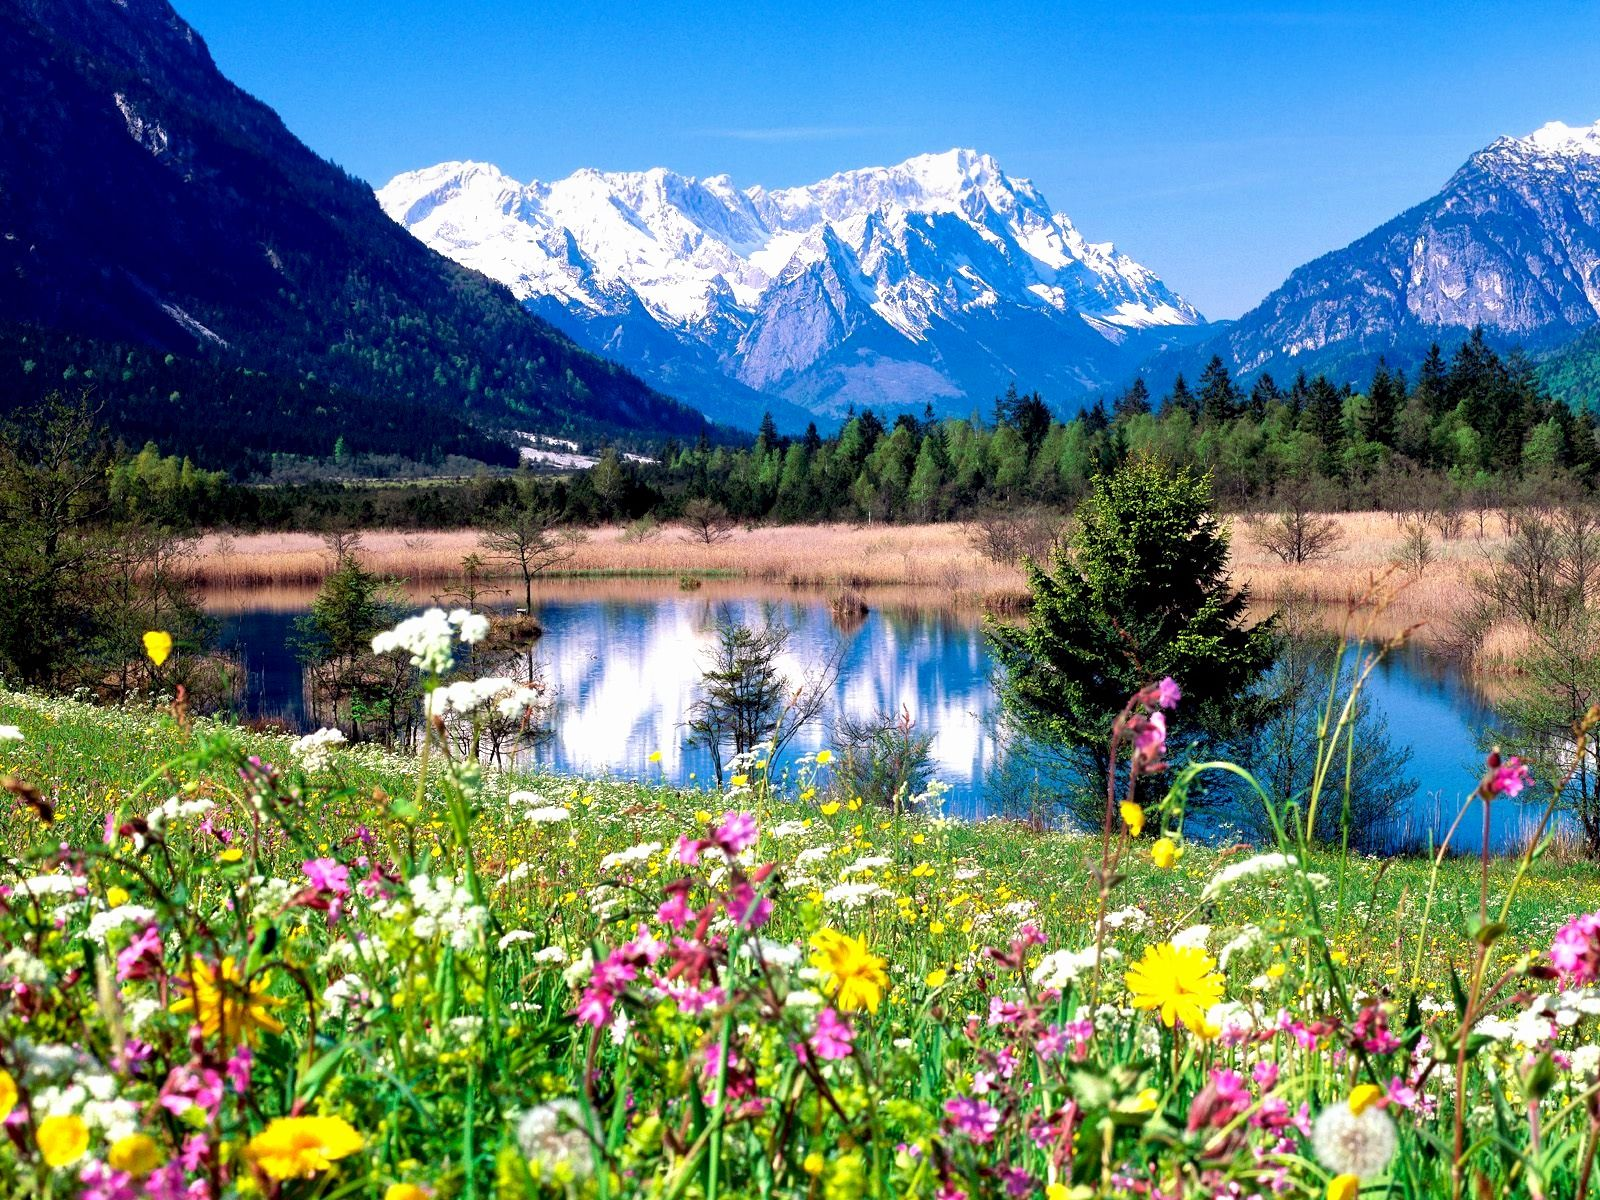 Spring Landscape Wallpaper High Quality Resolution Eqs Beautiful Landscapes Beautiful Nature Beautiful Places